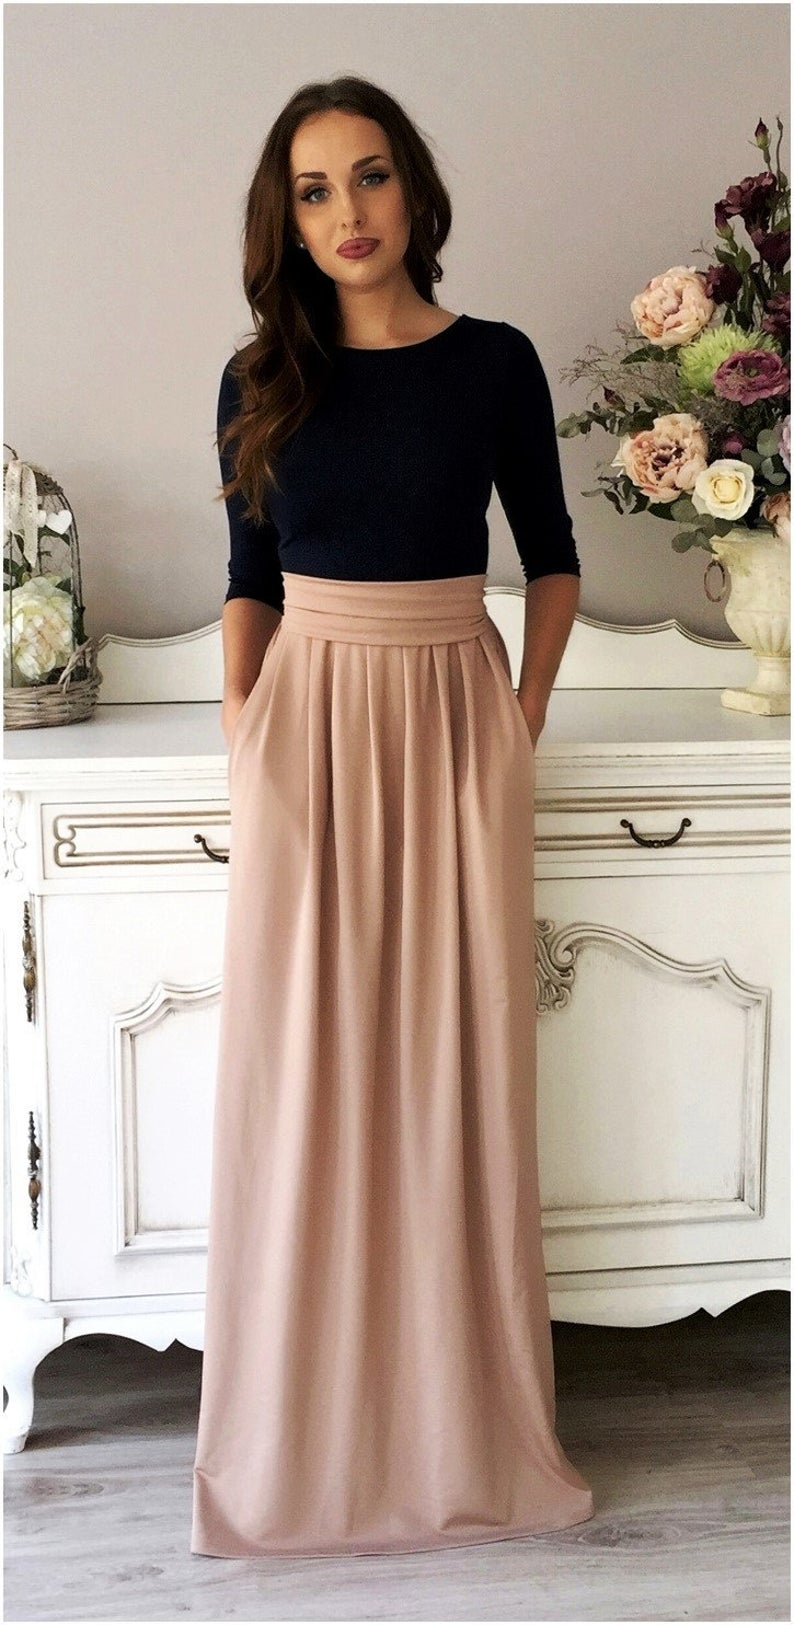 Navy Blue Cappuccino Brownish Maxi Dress 3 4 Sleeves Round Neckline Pockets Wide Sash In 2021 Fashion Classy Fashion Womens Dresses [ 1625 x 794 Pixel ]